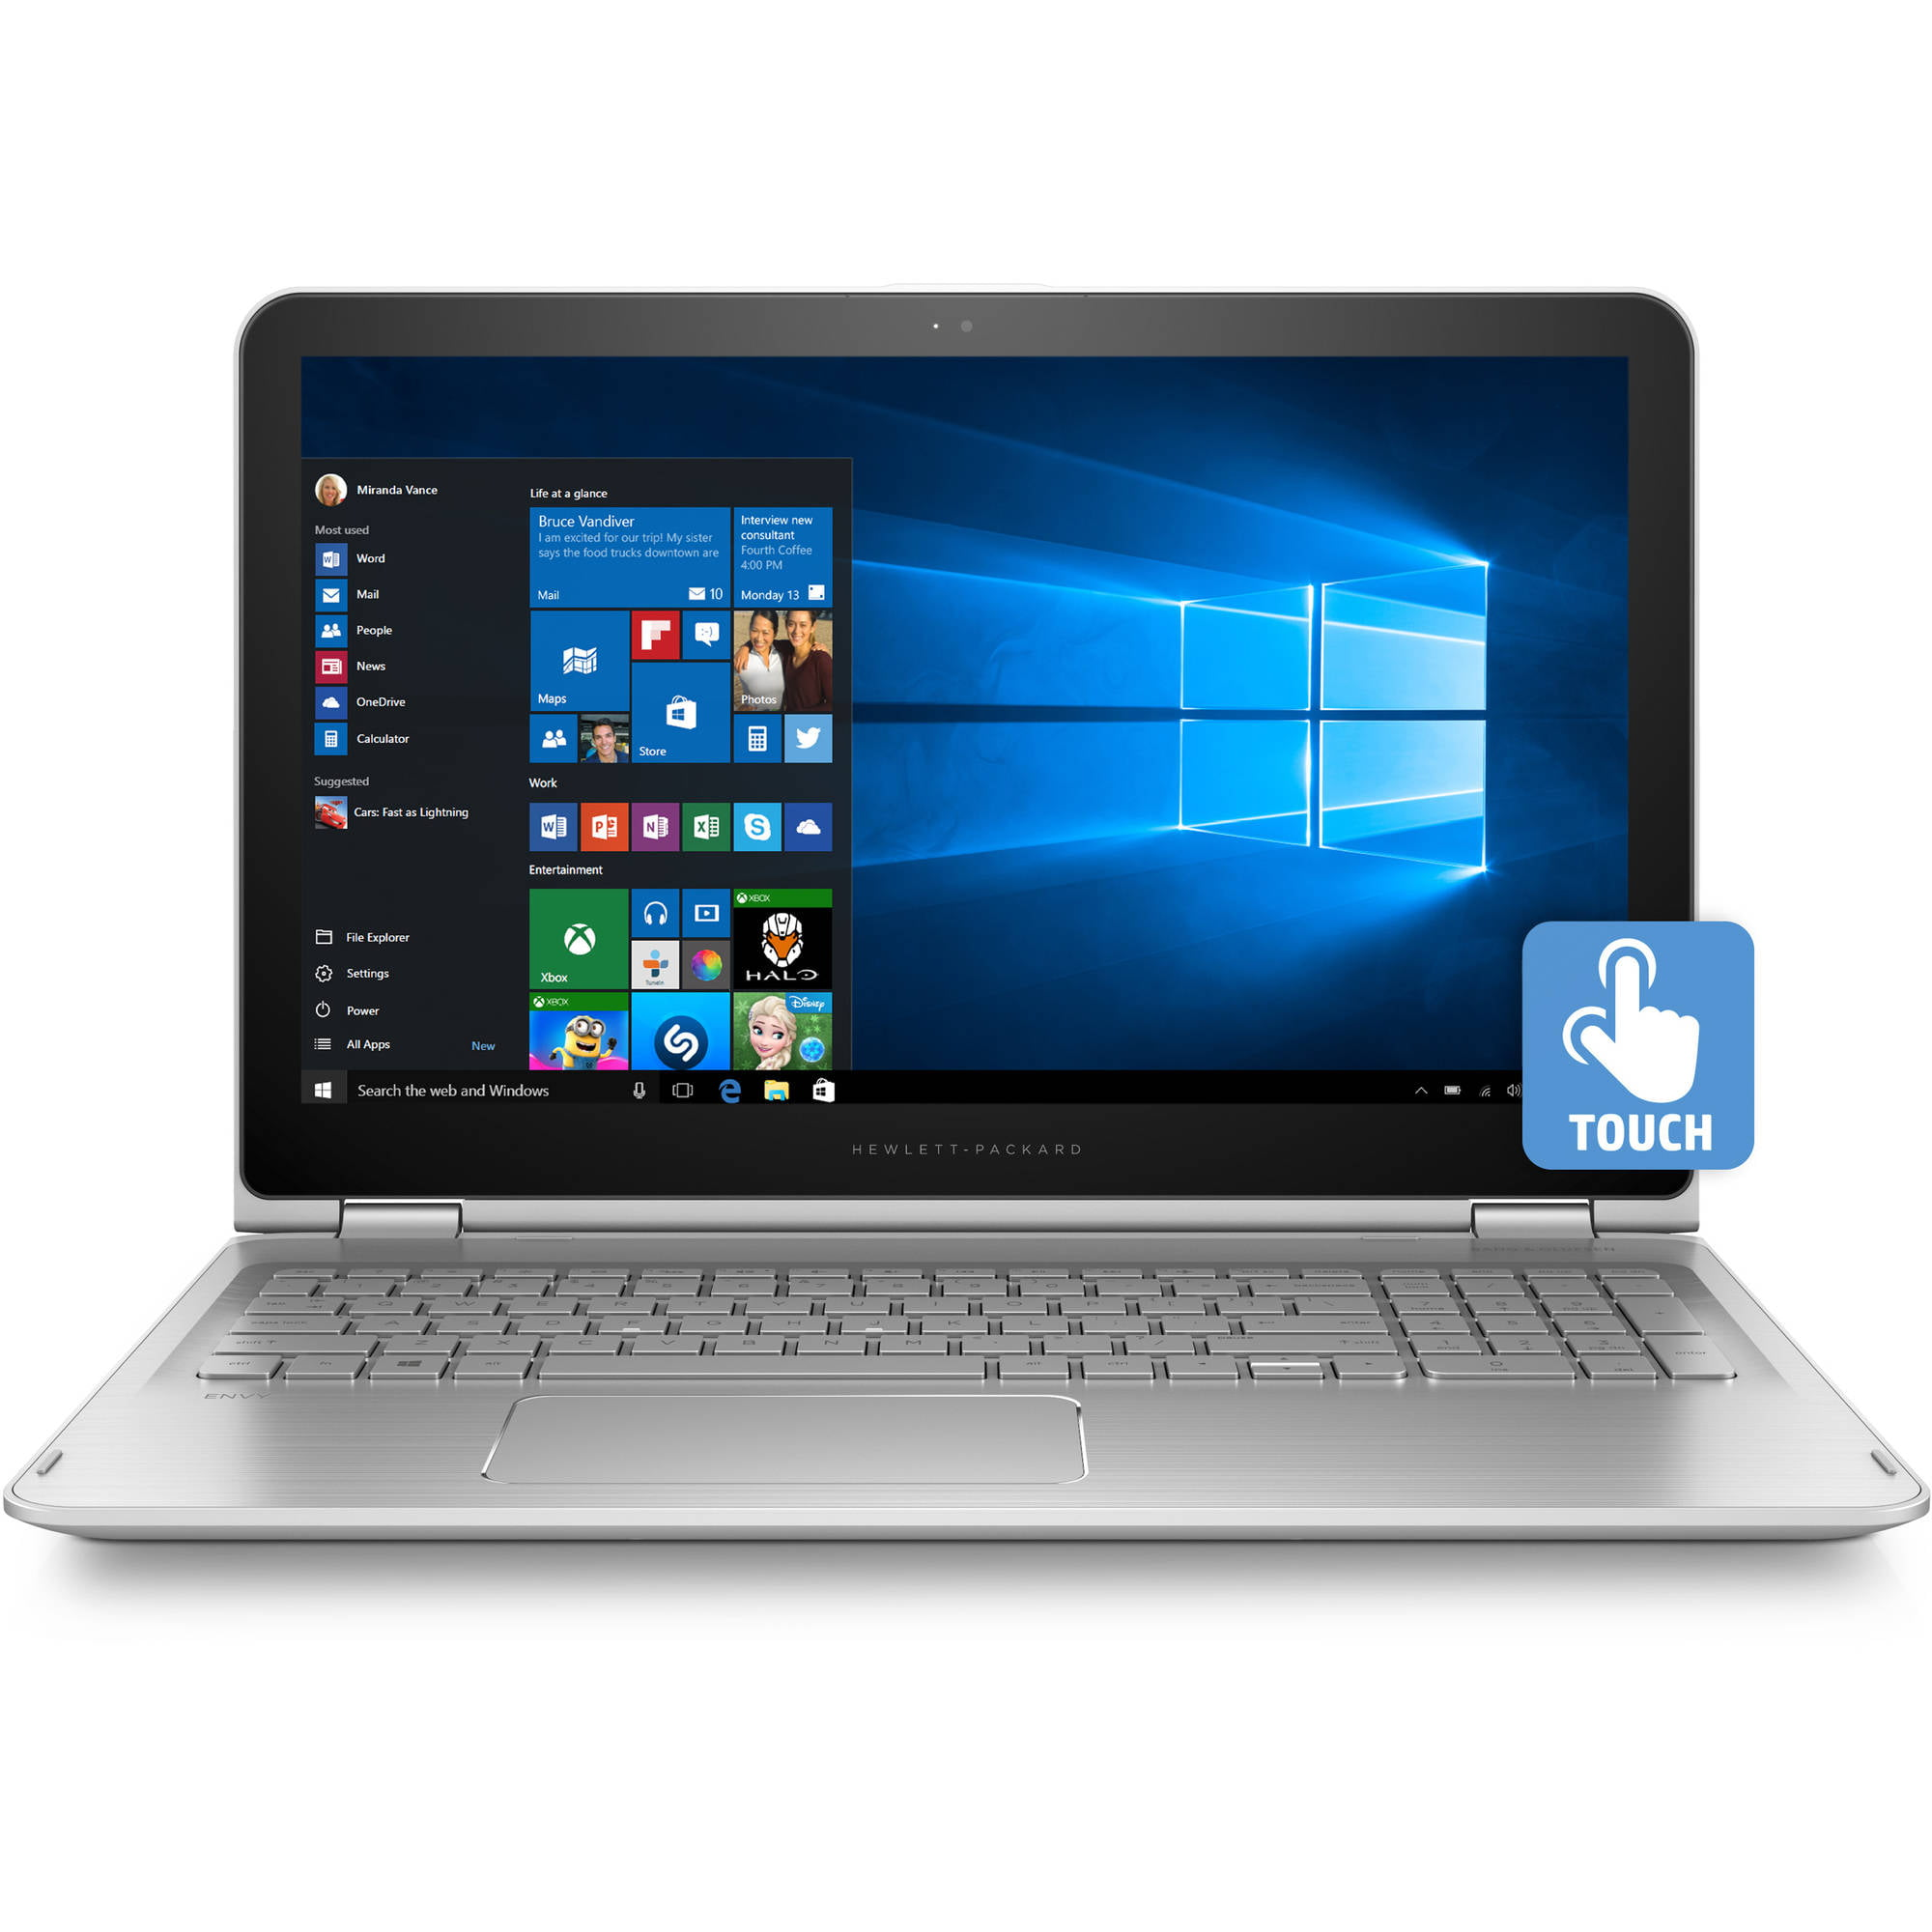 "HP Pavilion 15 bk020wm X360 15 6"" Laptop Touch Screen 2 in 1 Windows 10 Intel Core i5 6200U Processor 8GB Memory 1TB Hard Drive Natural Silver"